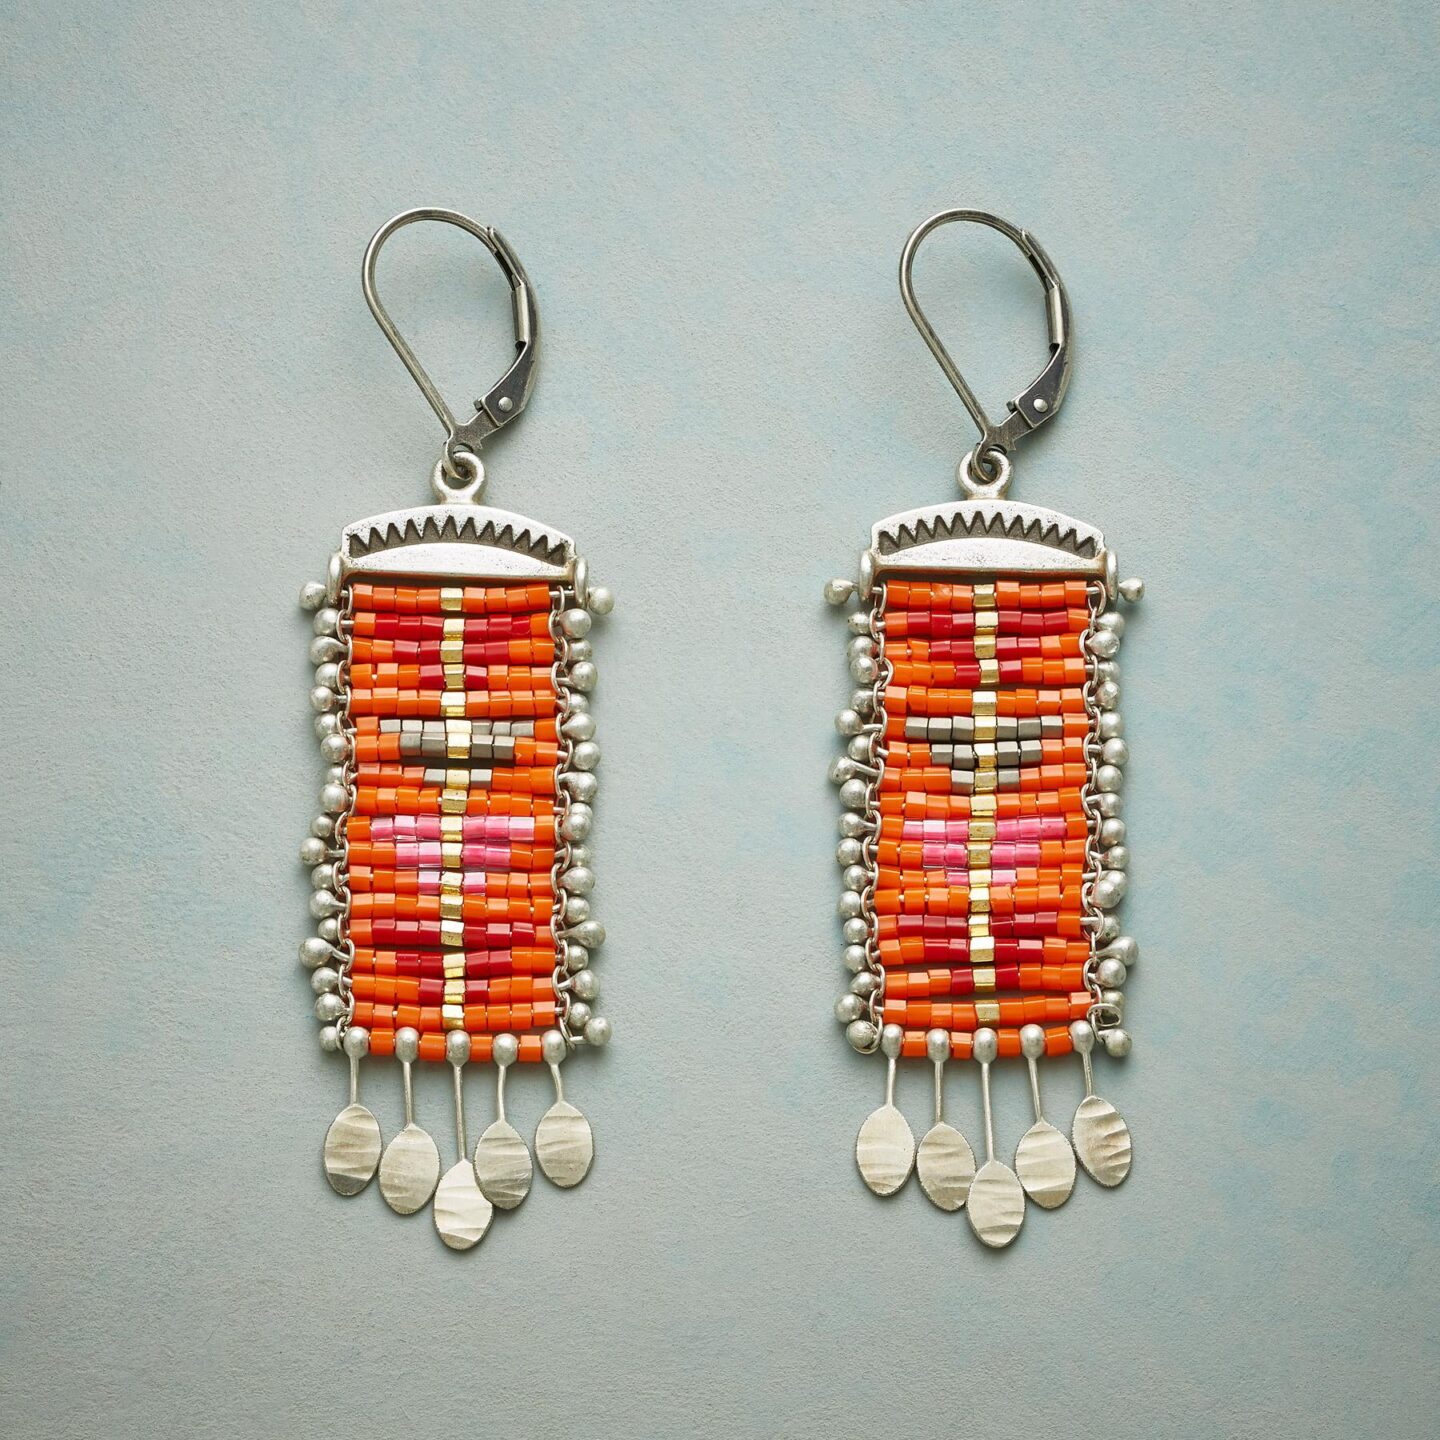 Naomi Herndon Resk Sky earrings - Sundance catalog